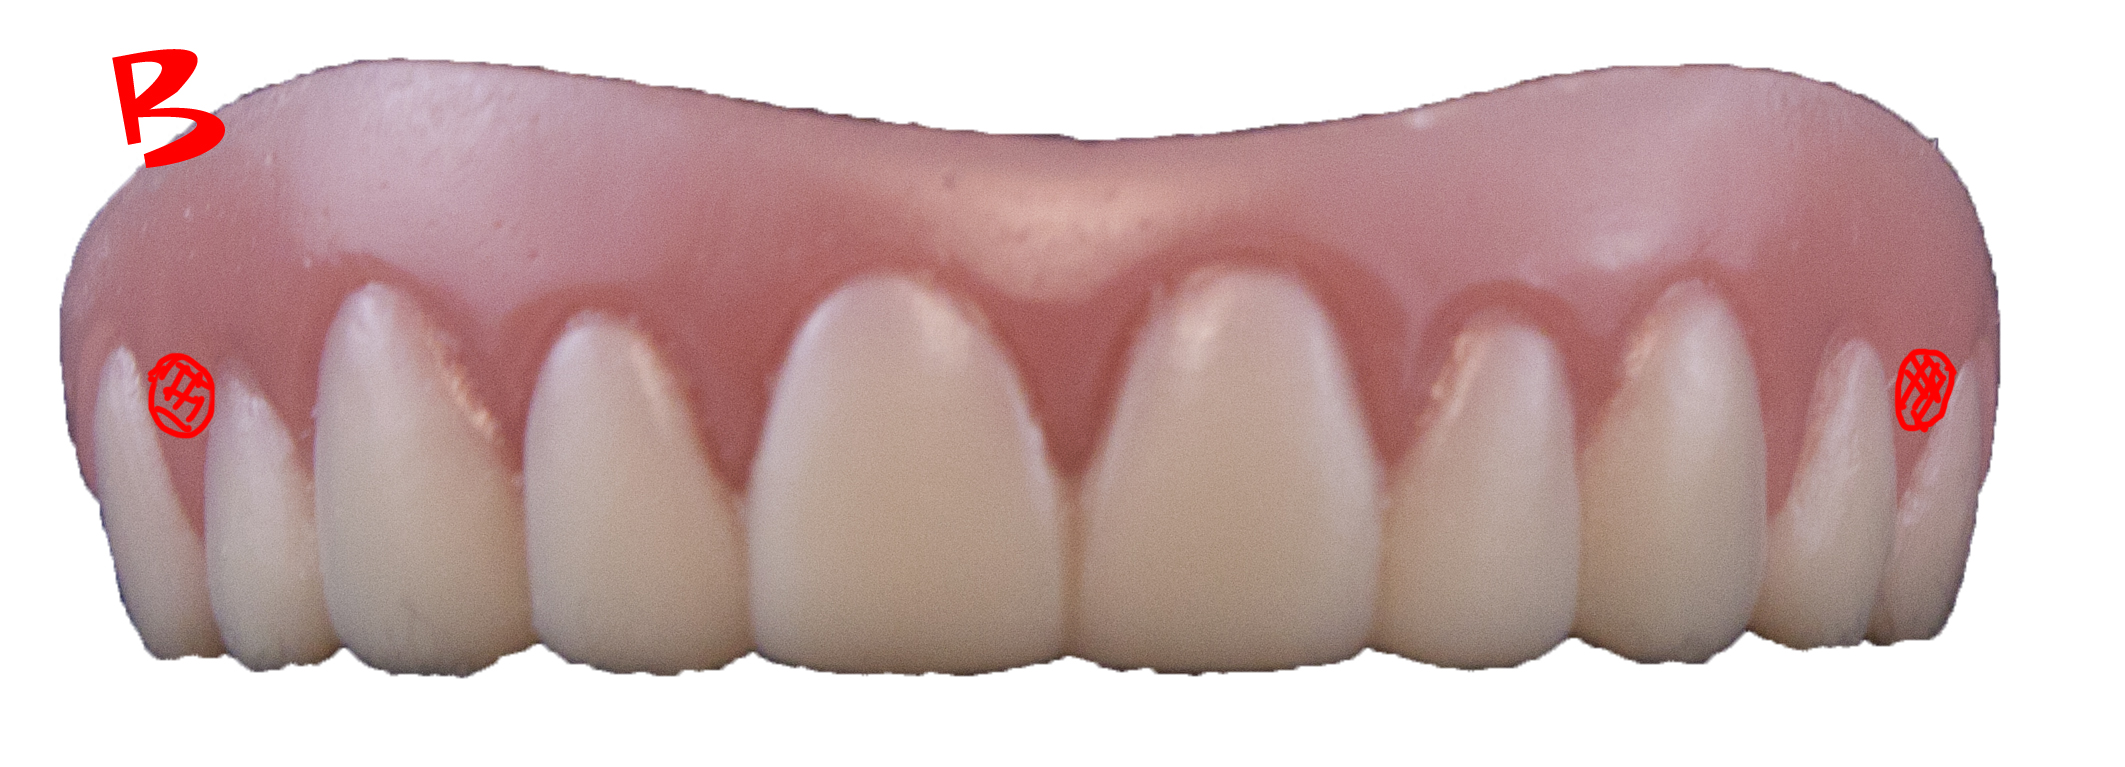 . PlusPng.com Instant_Smile_Teeth_Size_Small.png · Teeth Change 2.jpg PlusPng.com  - Teeth PNG HD